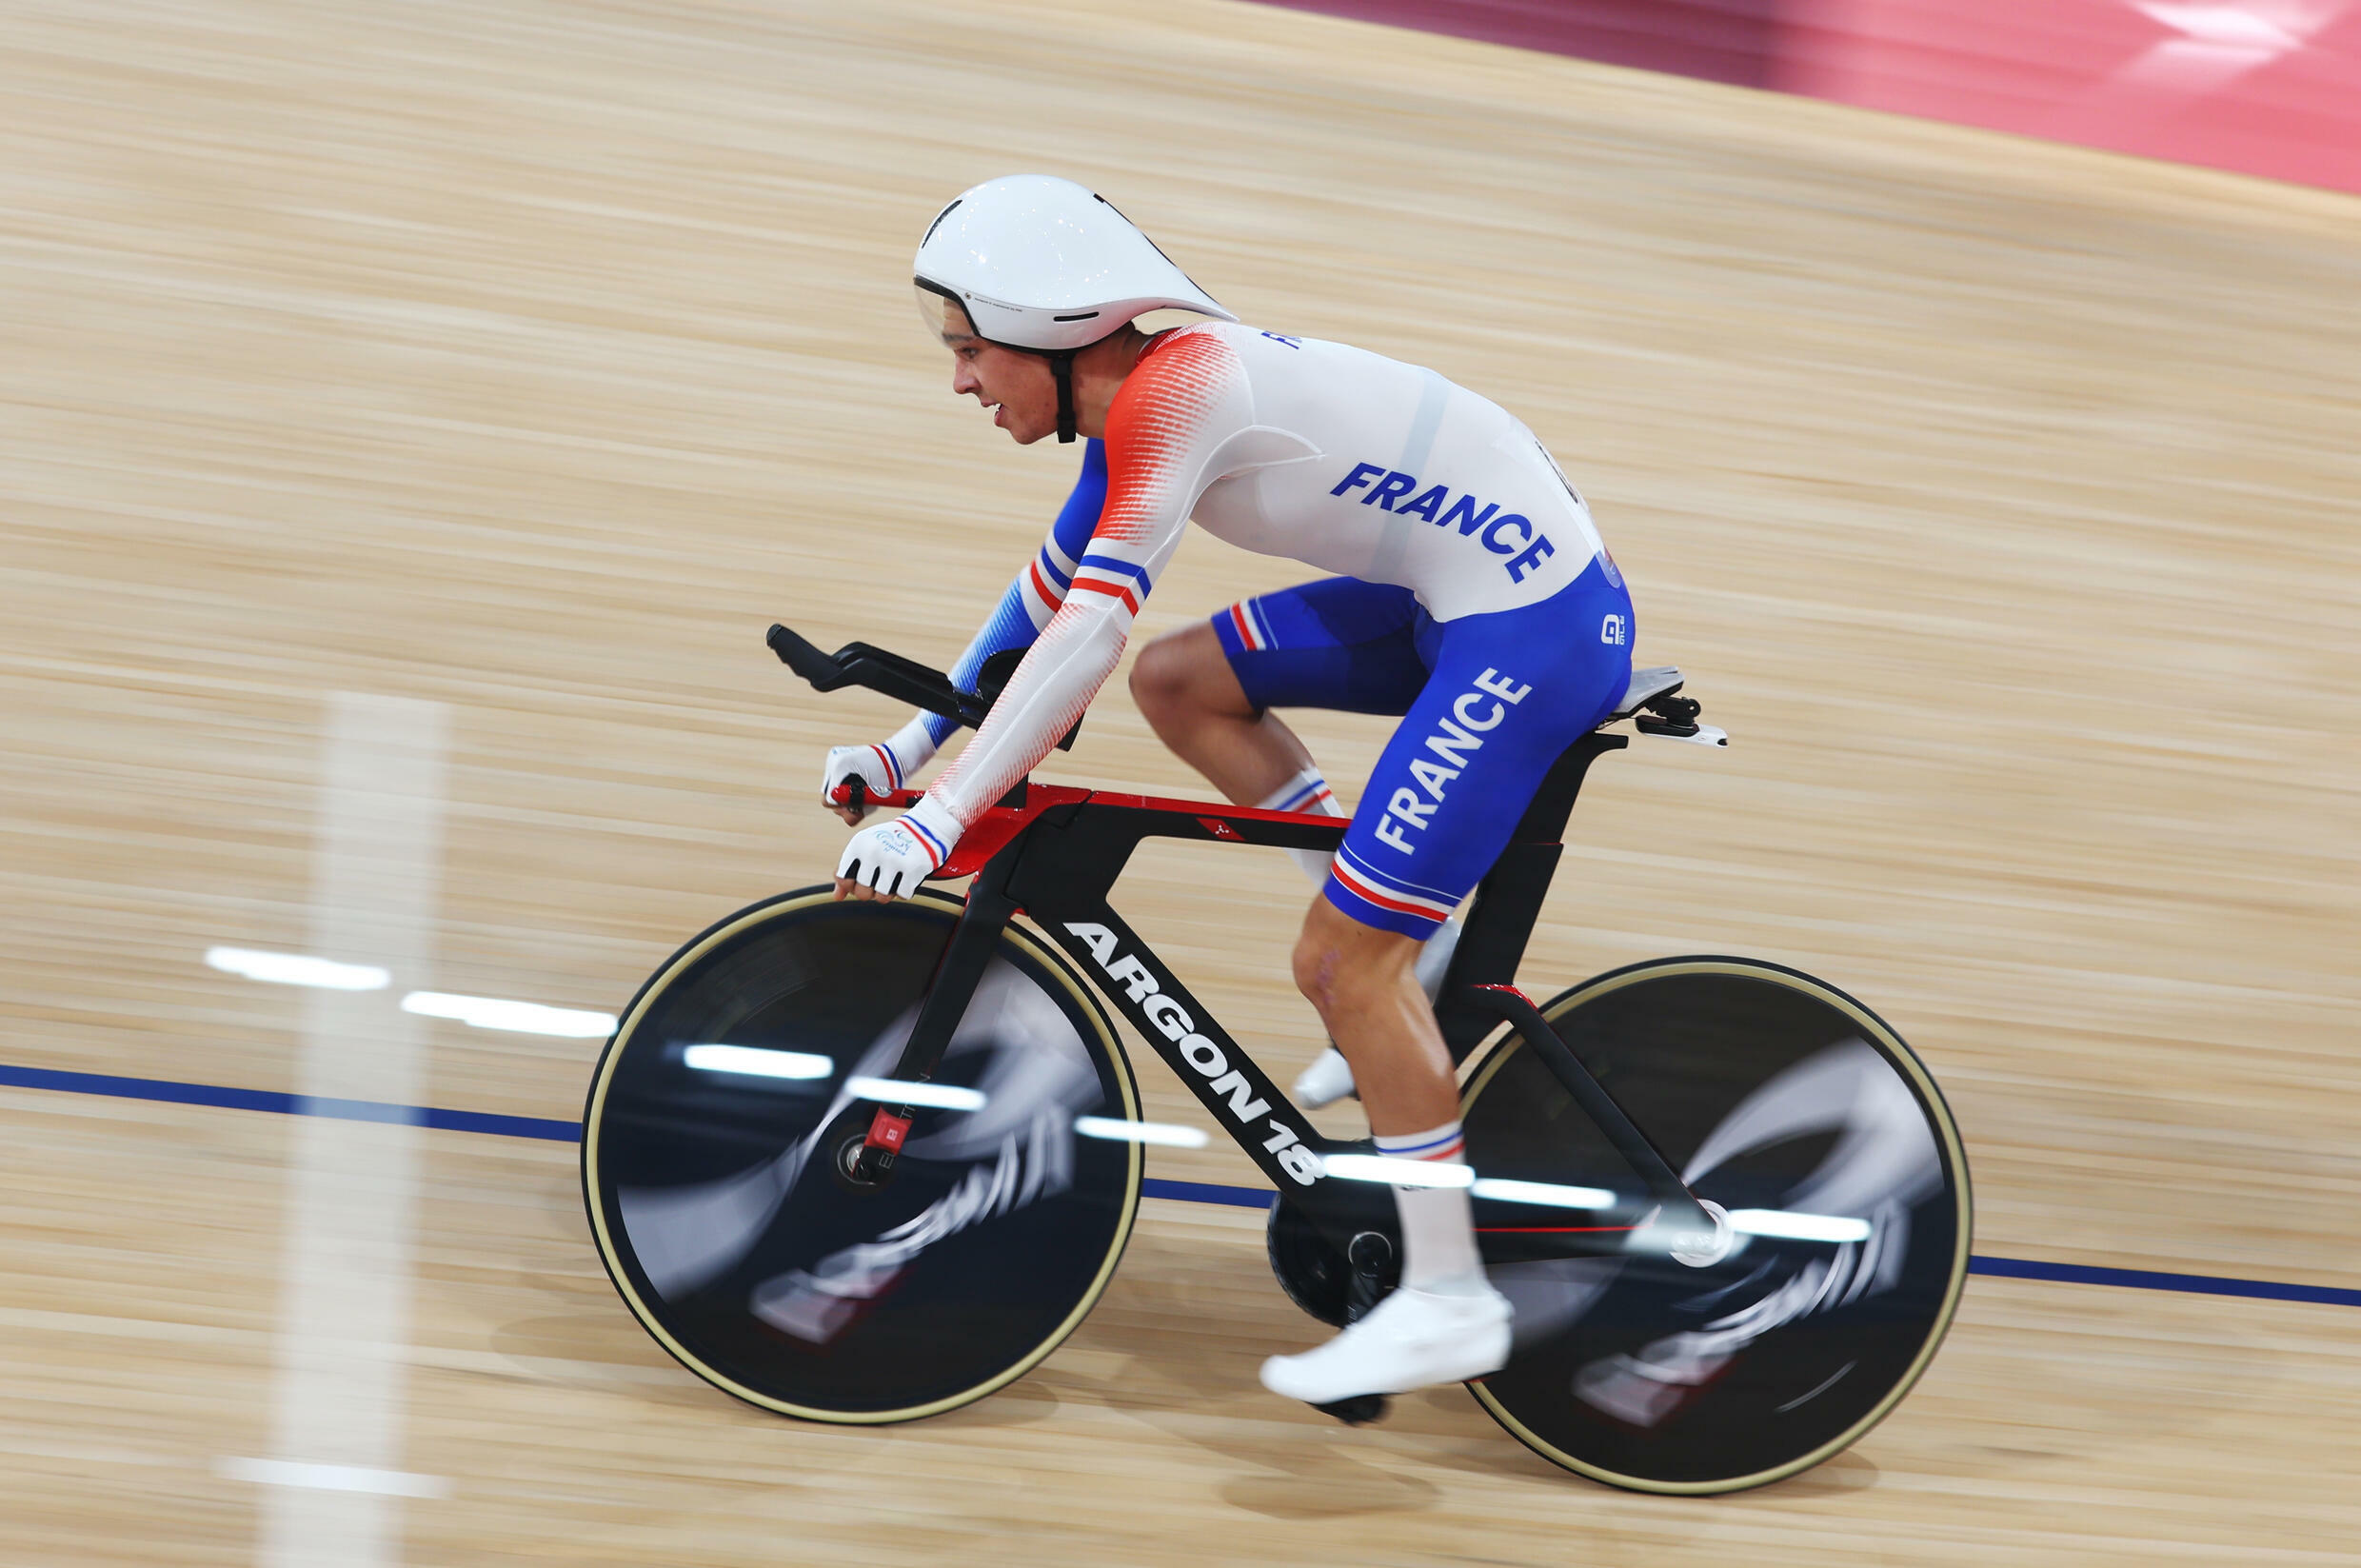 2021-08-26T045620Z_1407989650_SP1EH8Q0DPR6T_RTRMADP_3_PARALYMPICS-2020-CYCLING-TRACK